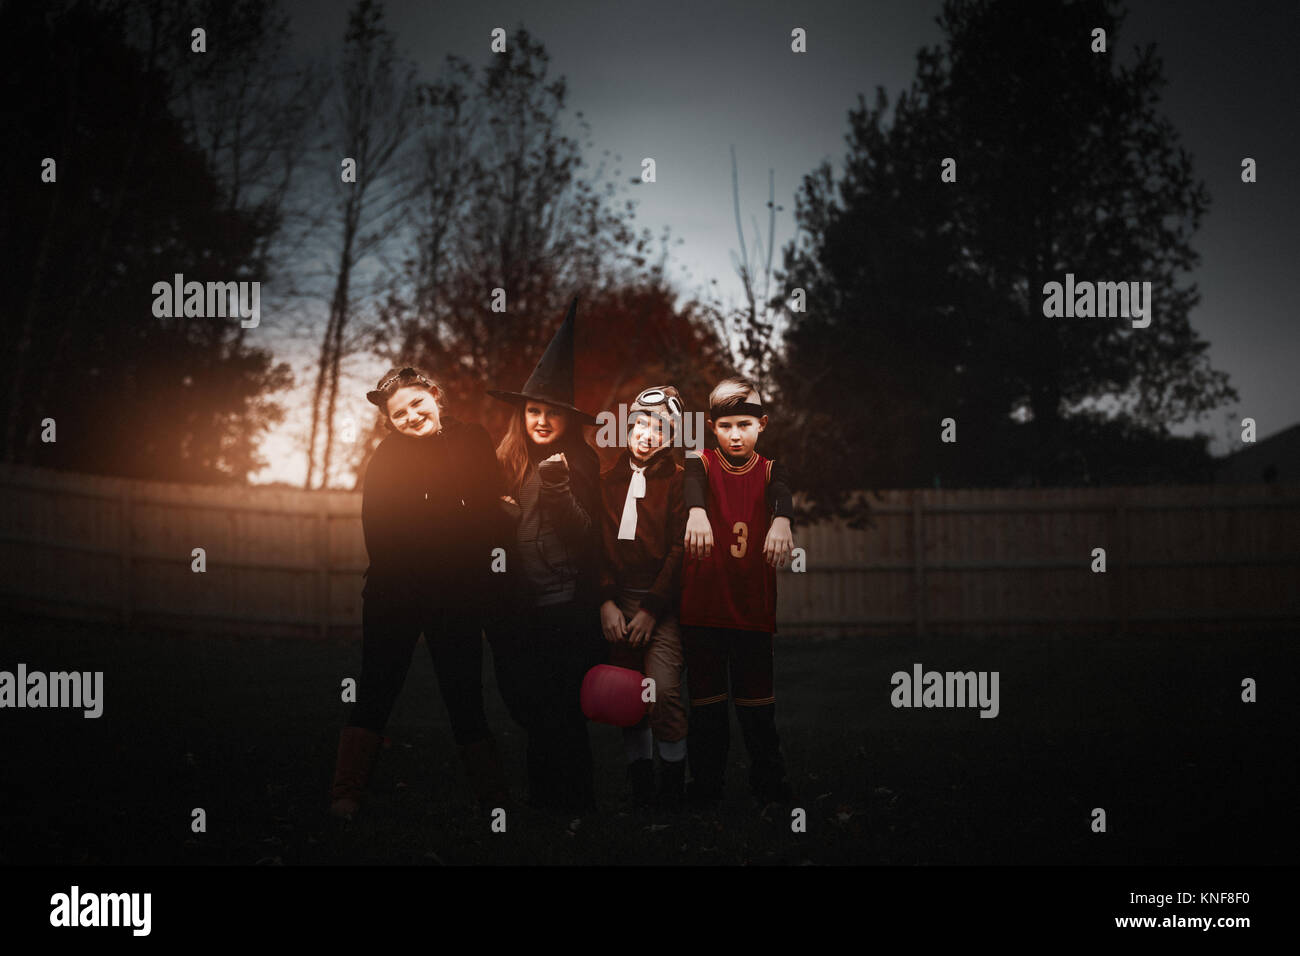 Portrait of boy and girls posed in halloween costumes in garden at dusk - Stock Image